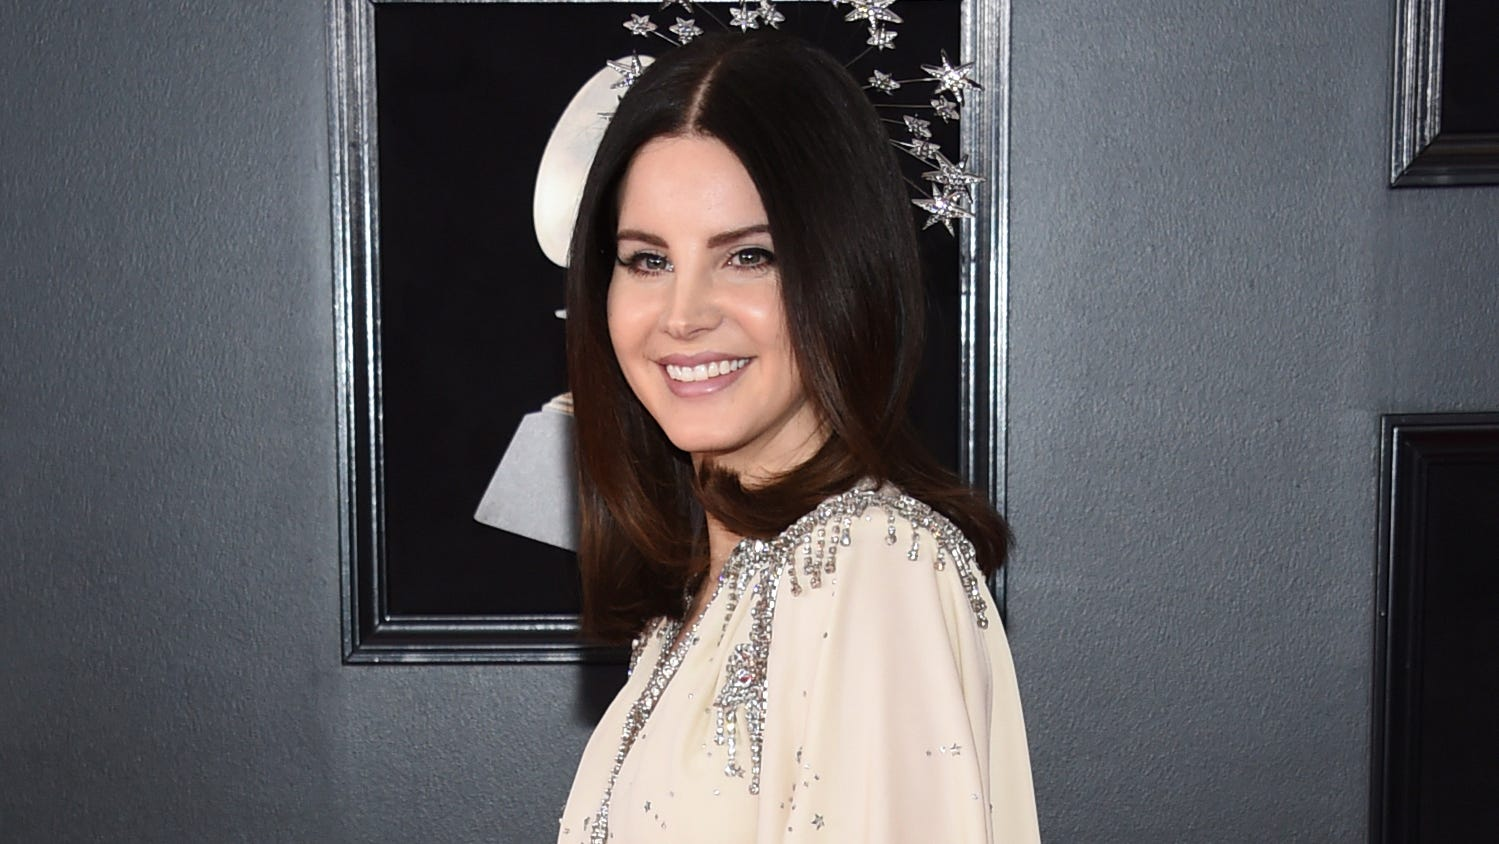 Lana Del Rey Slammed For Mesh Face Mask She Wore To Meet Poetry Fans